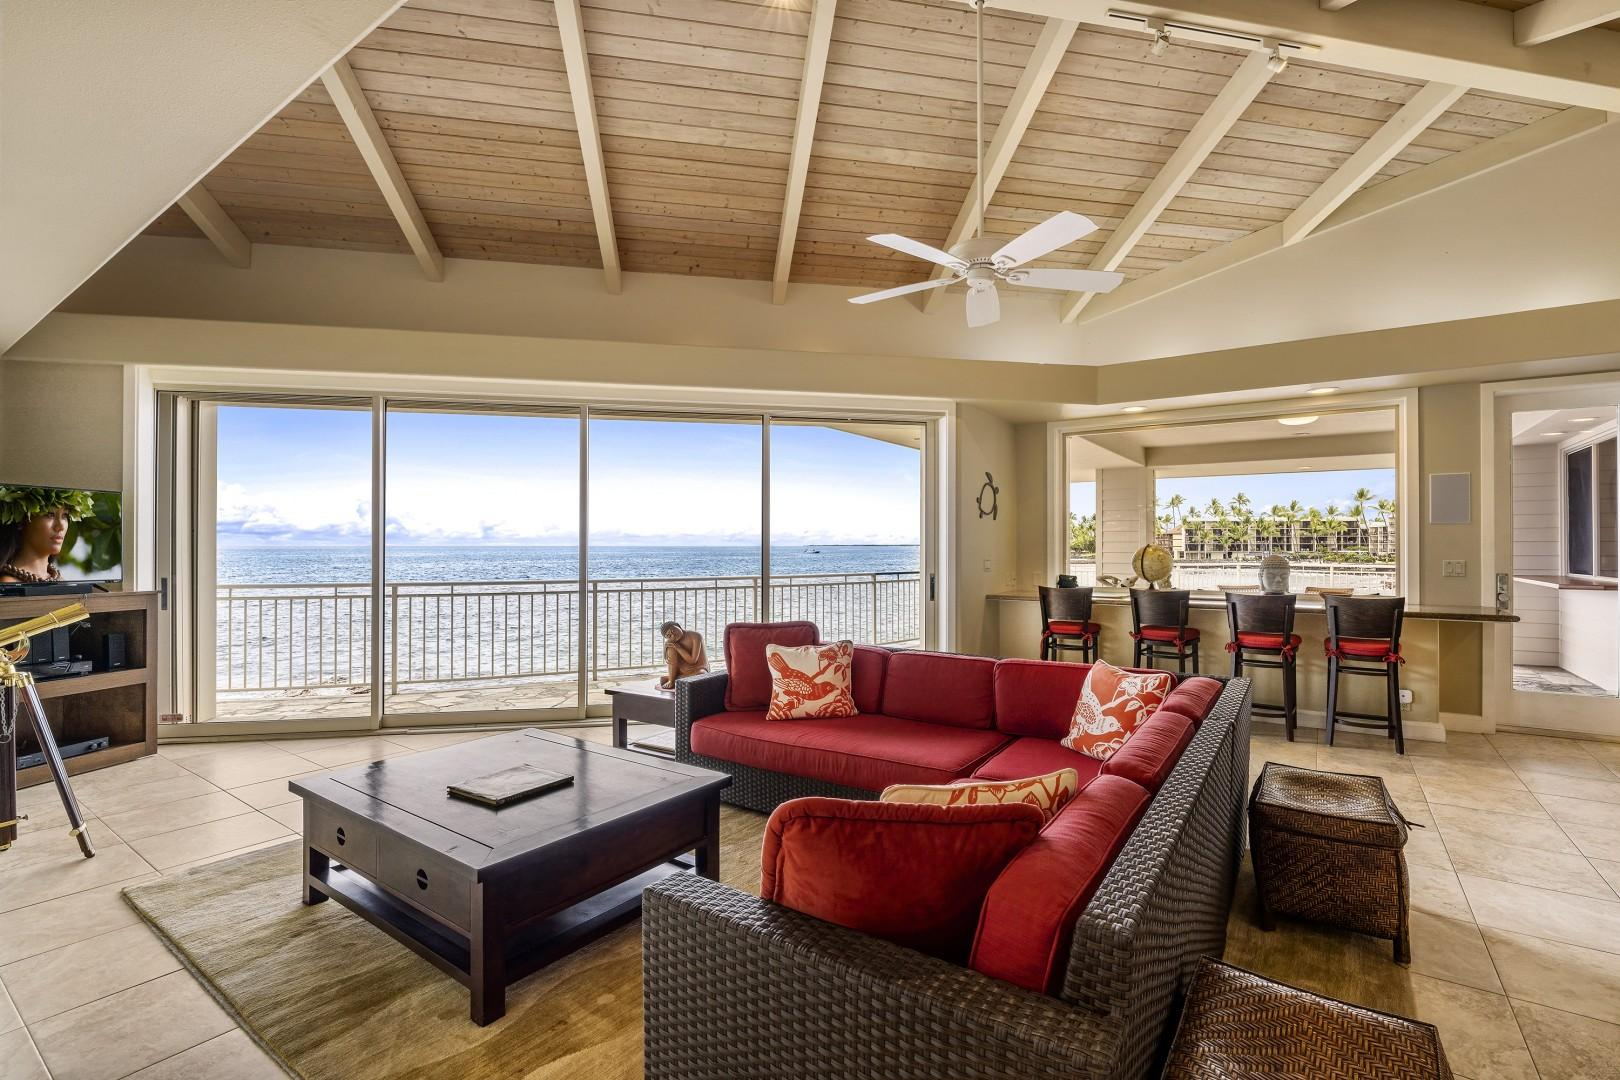 Breathtaking views of the ocean right from the couch!